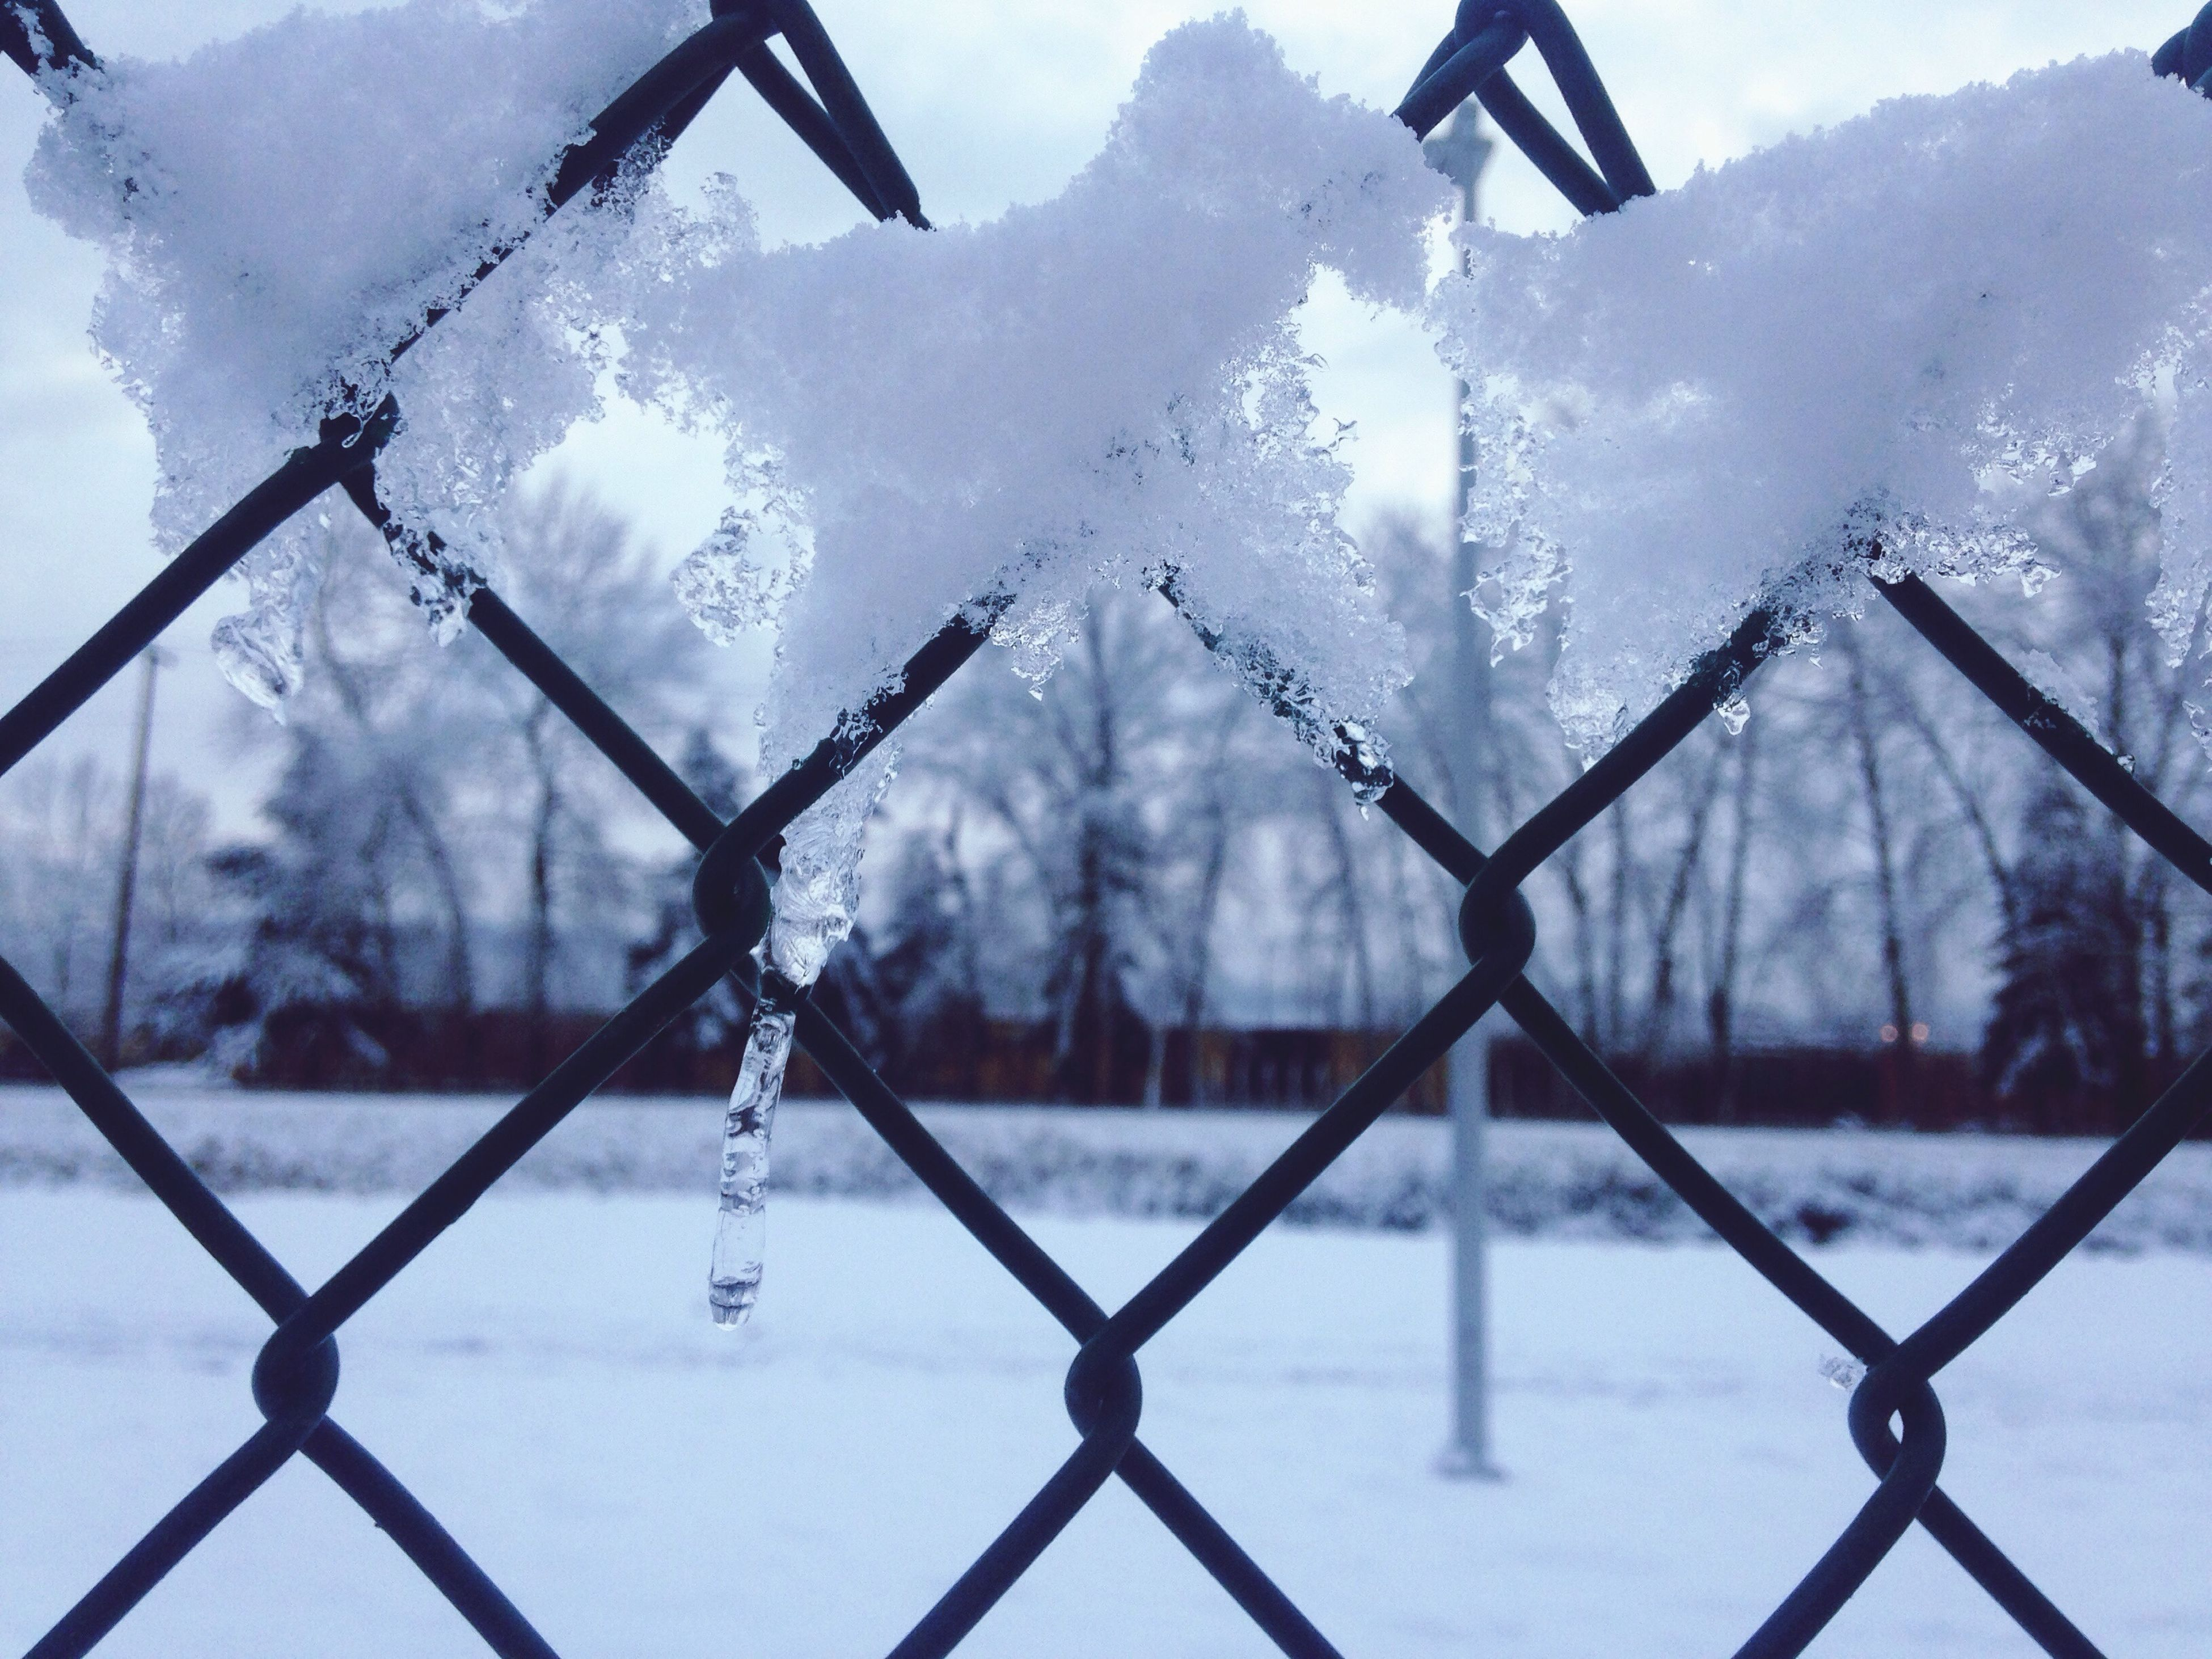 Focus Point Icecicles With Snow On Fence Close Up Winter